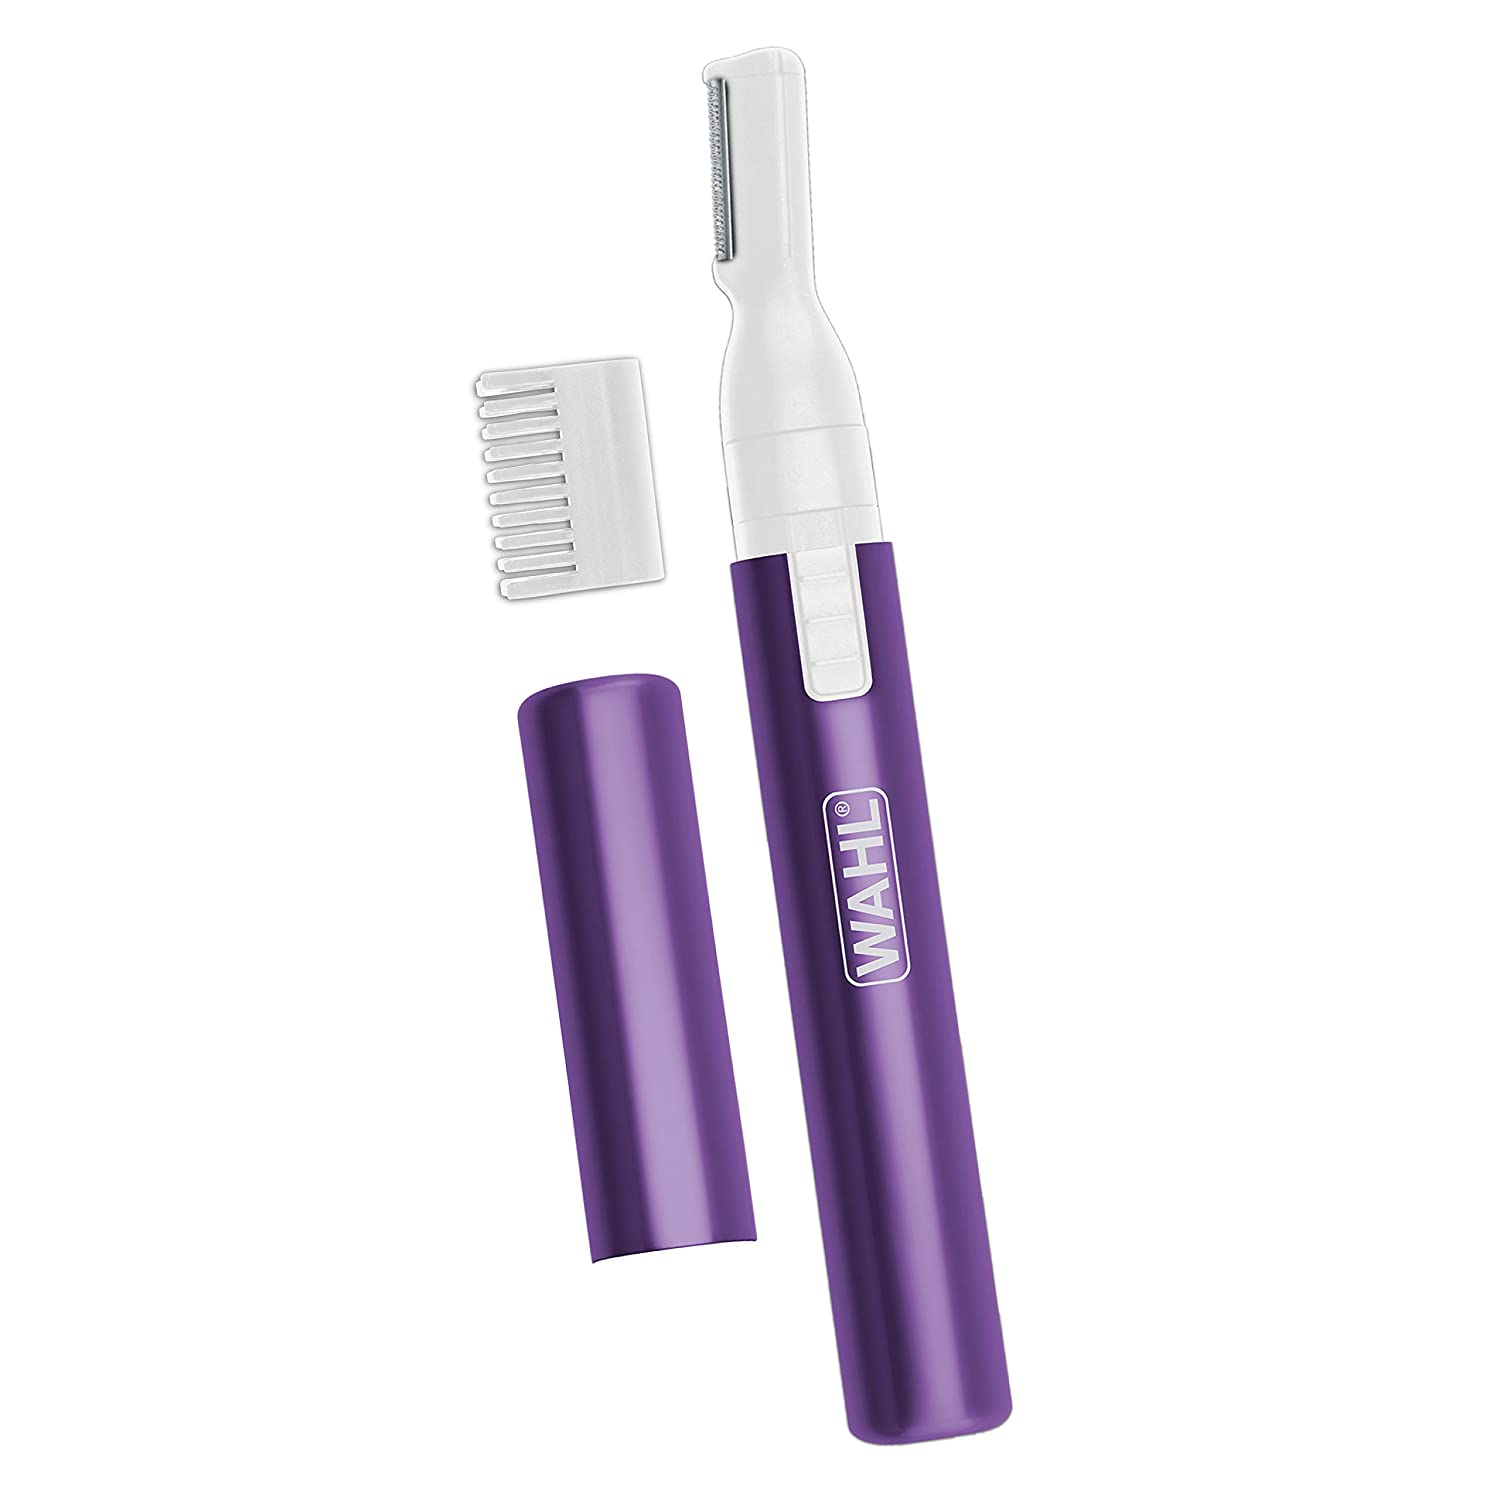 Wahl Clean and Confident Precision Detailer Purple #5640-100